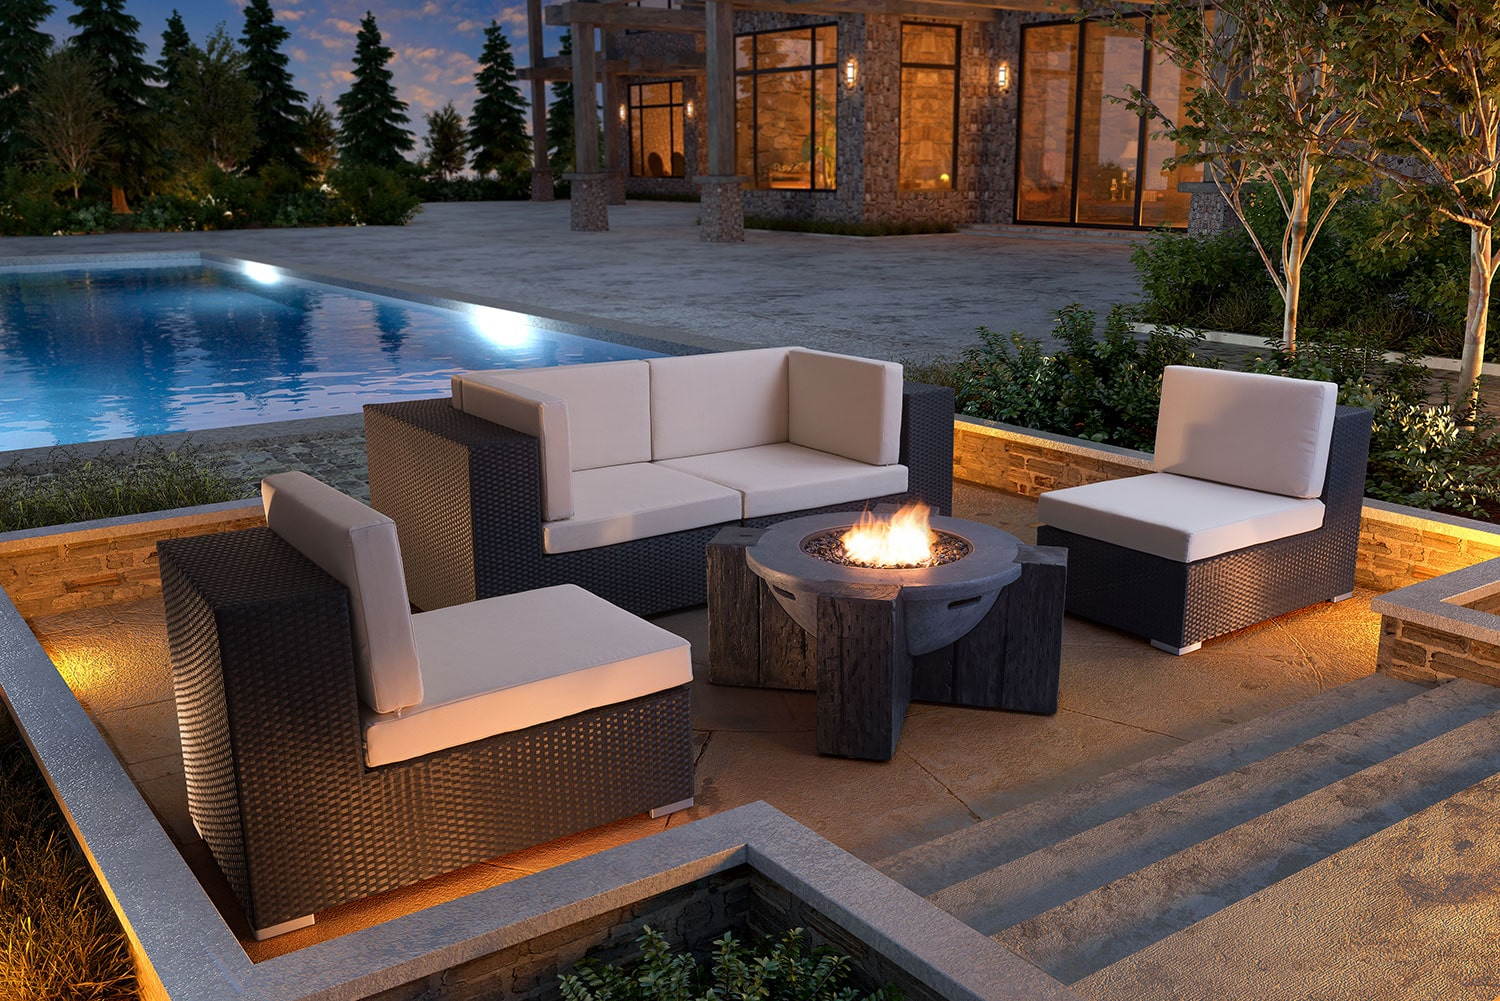 Wiley 3 Piece Outdoor Sectional Espresso Value City Furniture And Mattresses